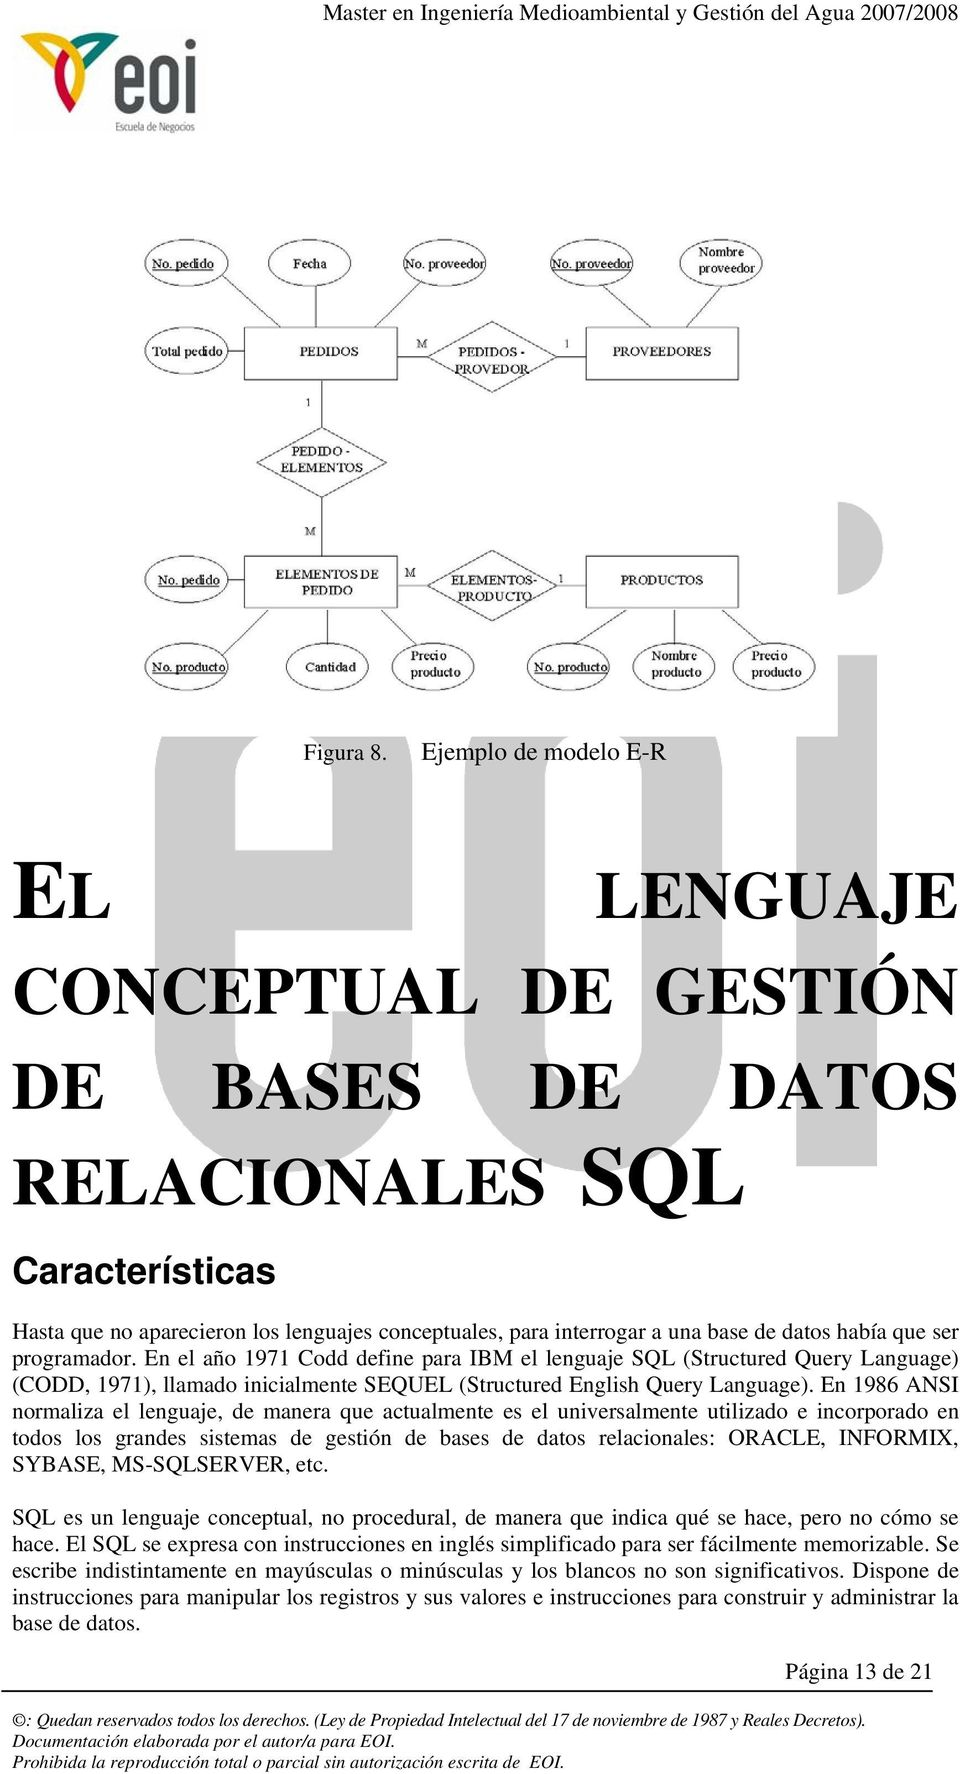 ser prgramadr. En el añ 1971 Cdd define para IBM el lenguaje SQL (Structured Query Language) (CODD, 1971), llamad inicialmente SEQUEL (Structured English Query Language).